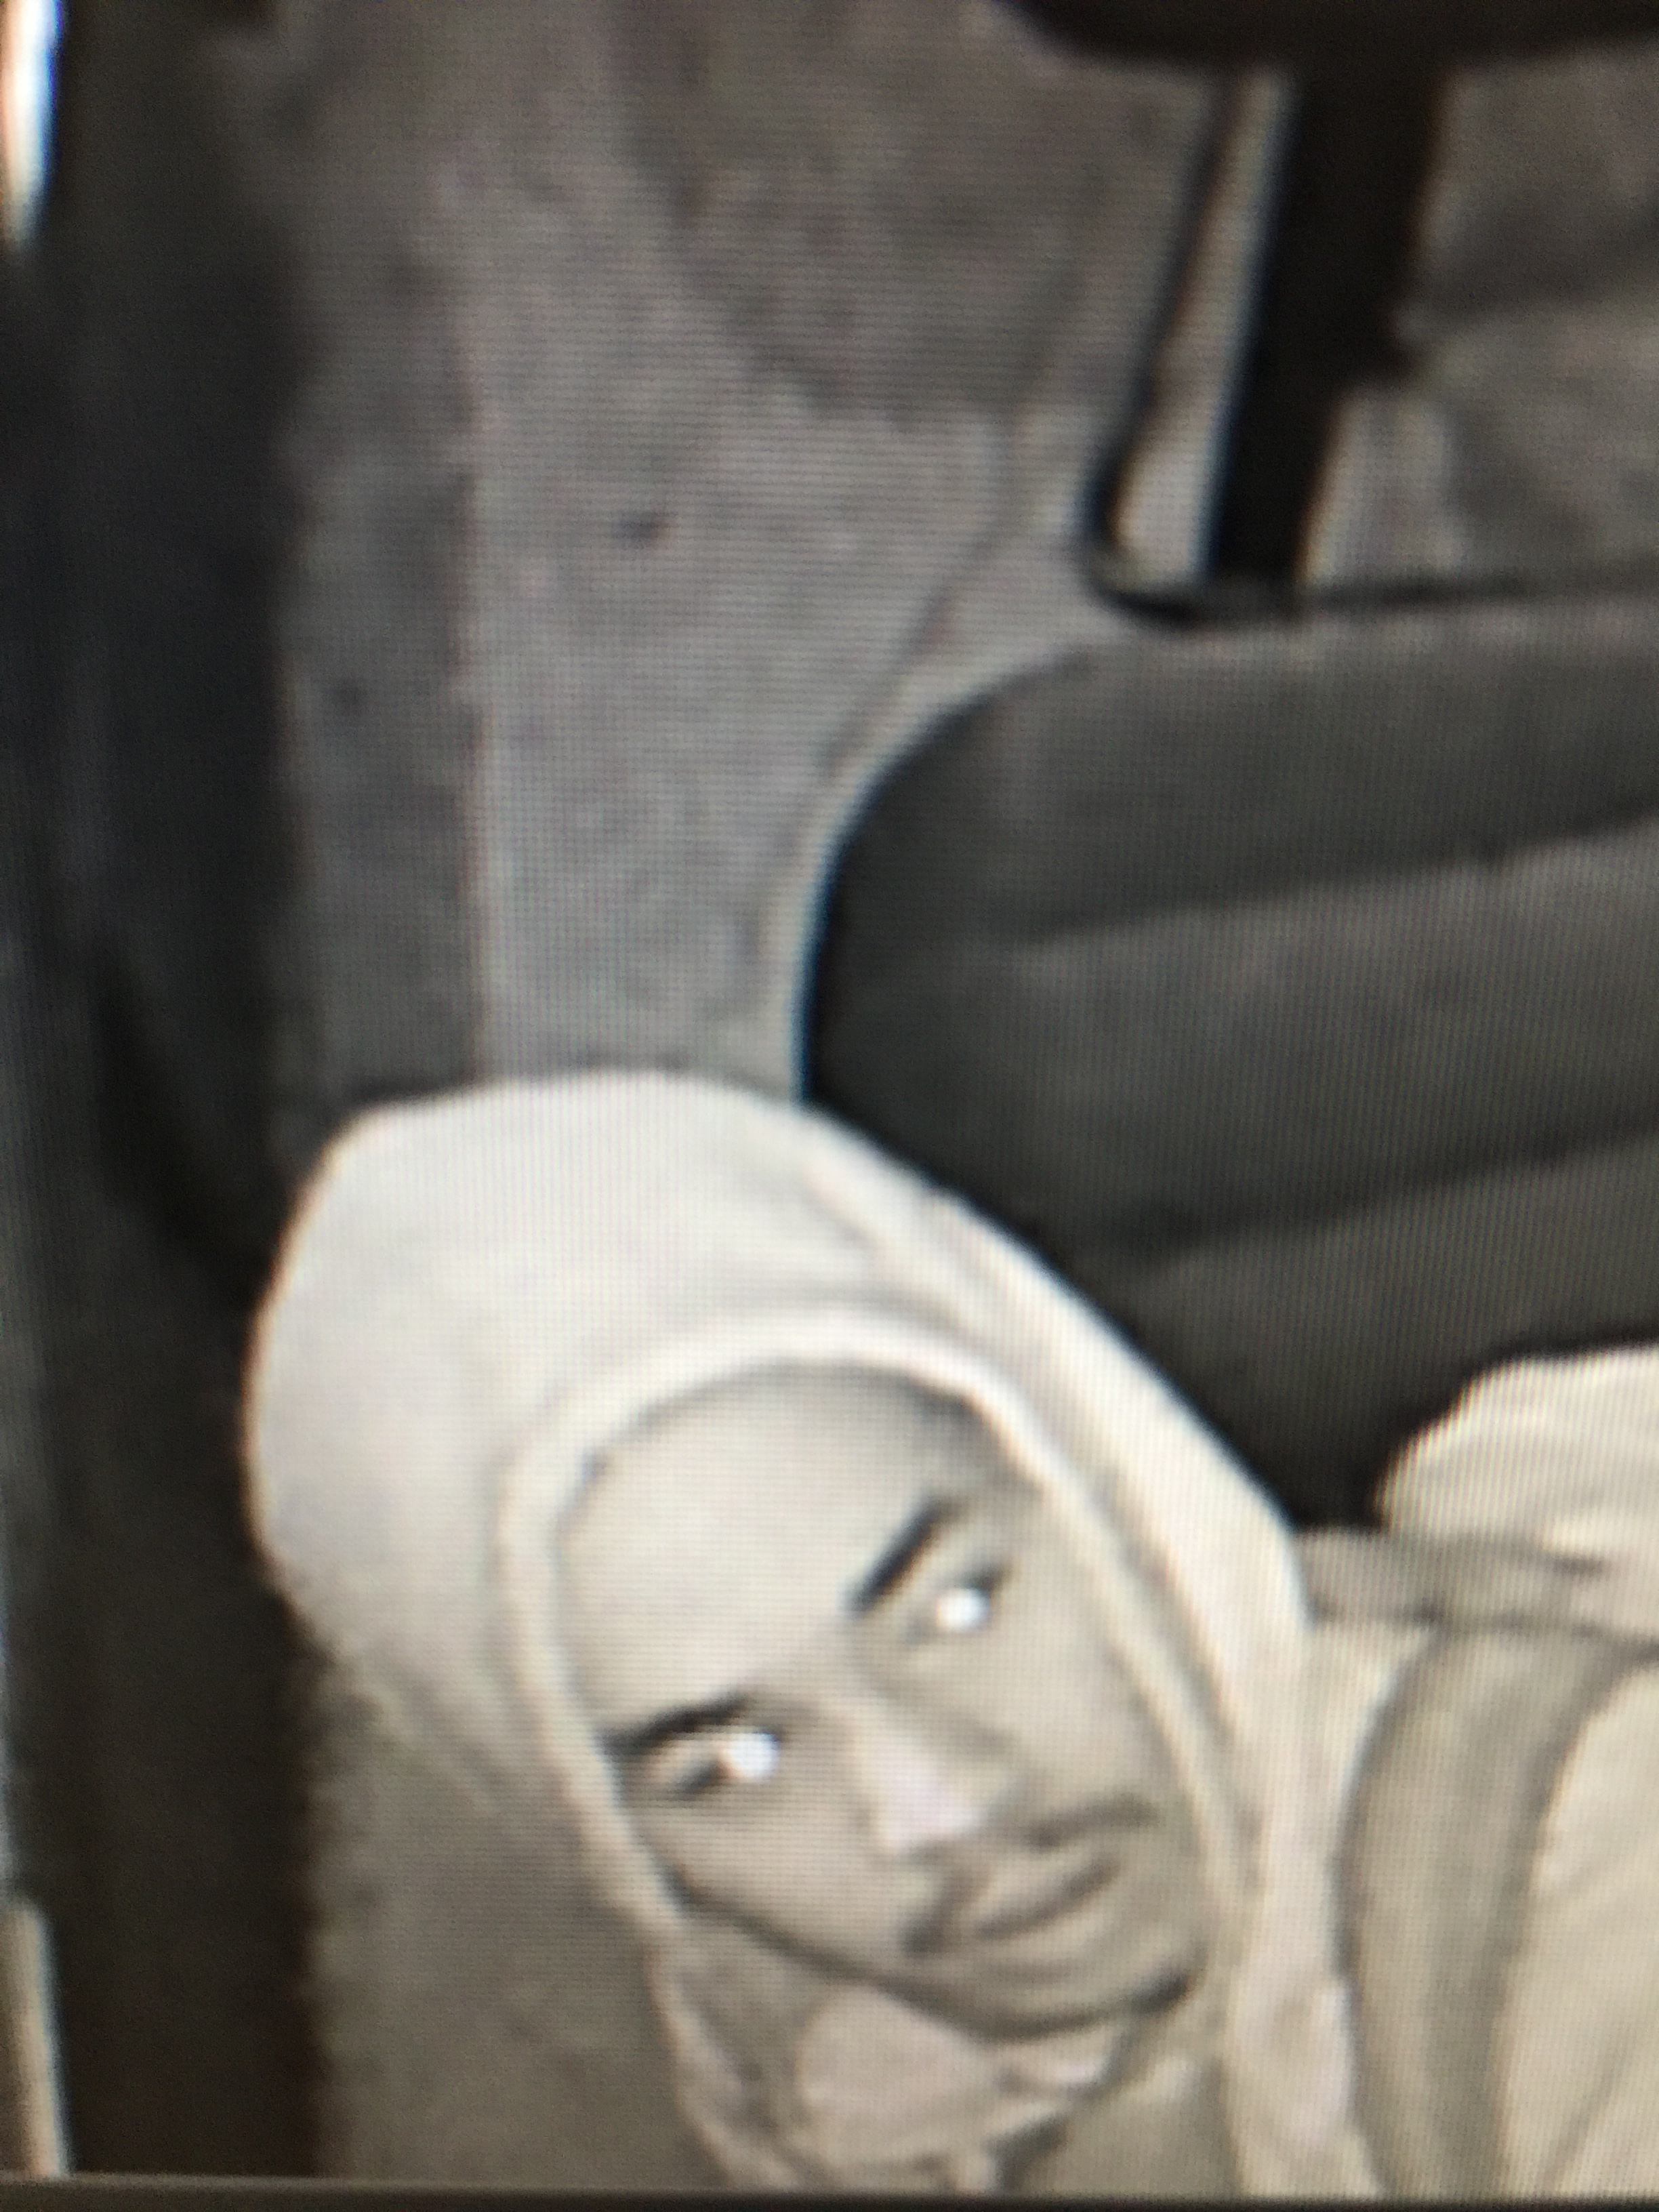 Police search for suspect in Marion bar shooting | WJPF News